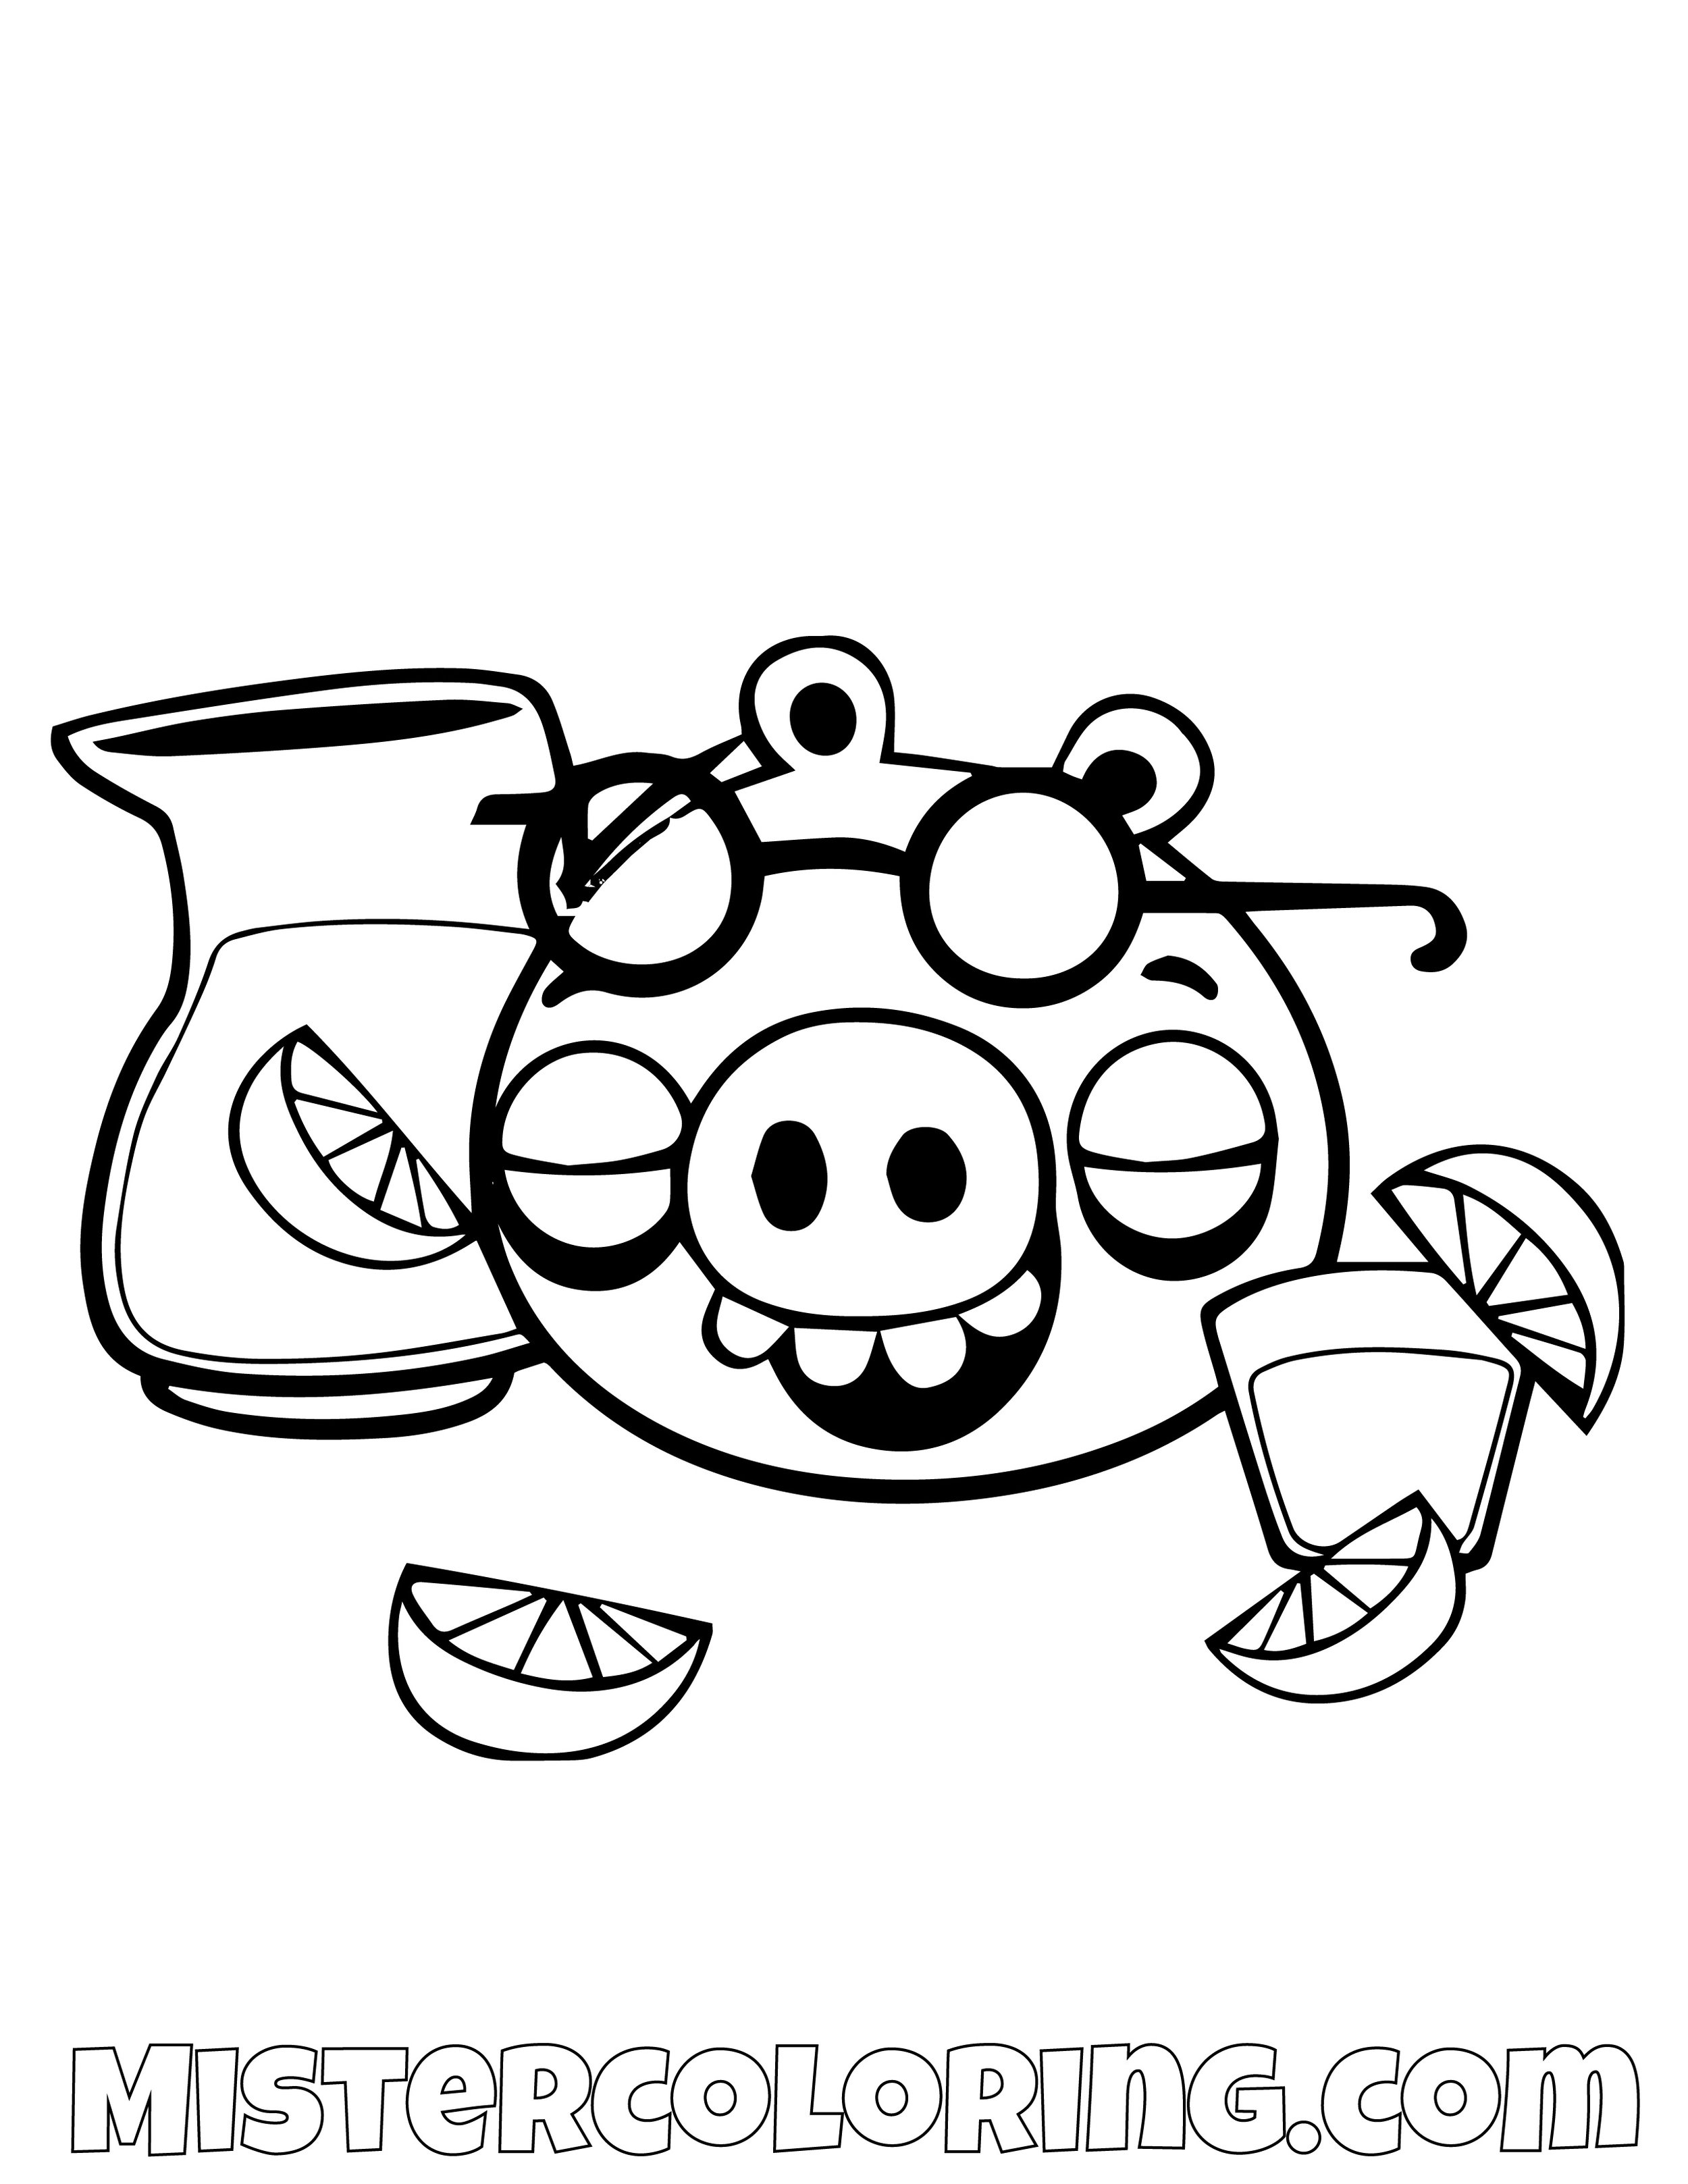 Pig Drinking Lemonade Angry Bird Coloring Pages